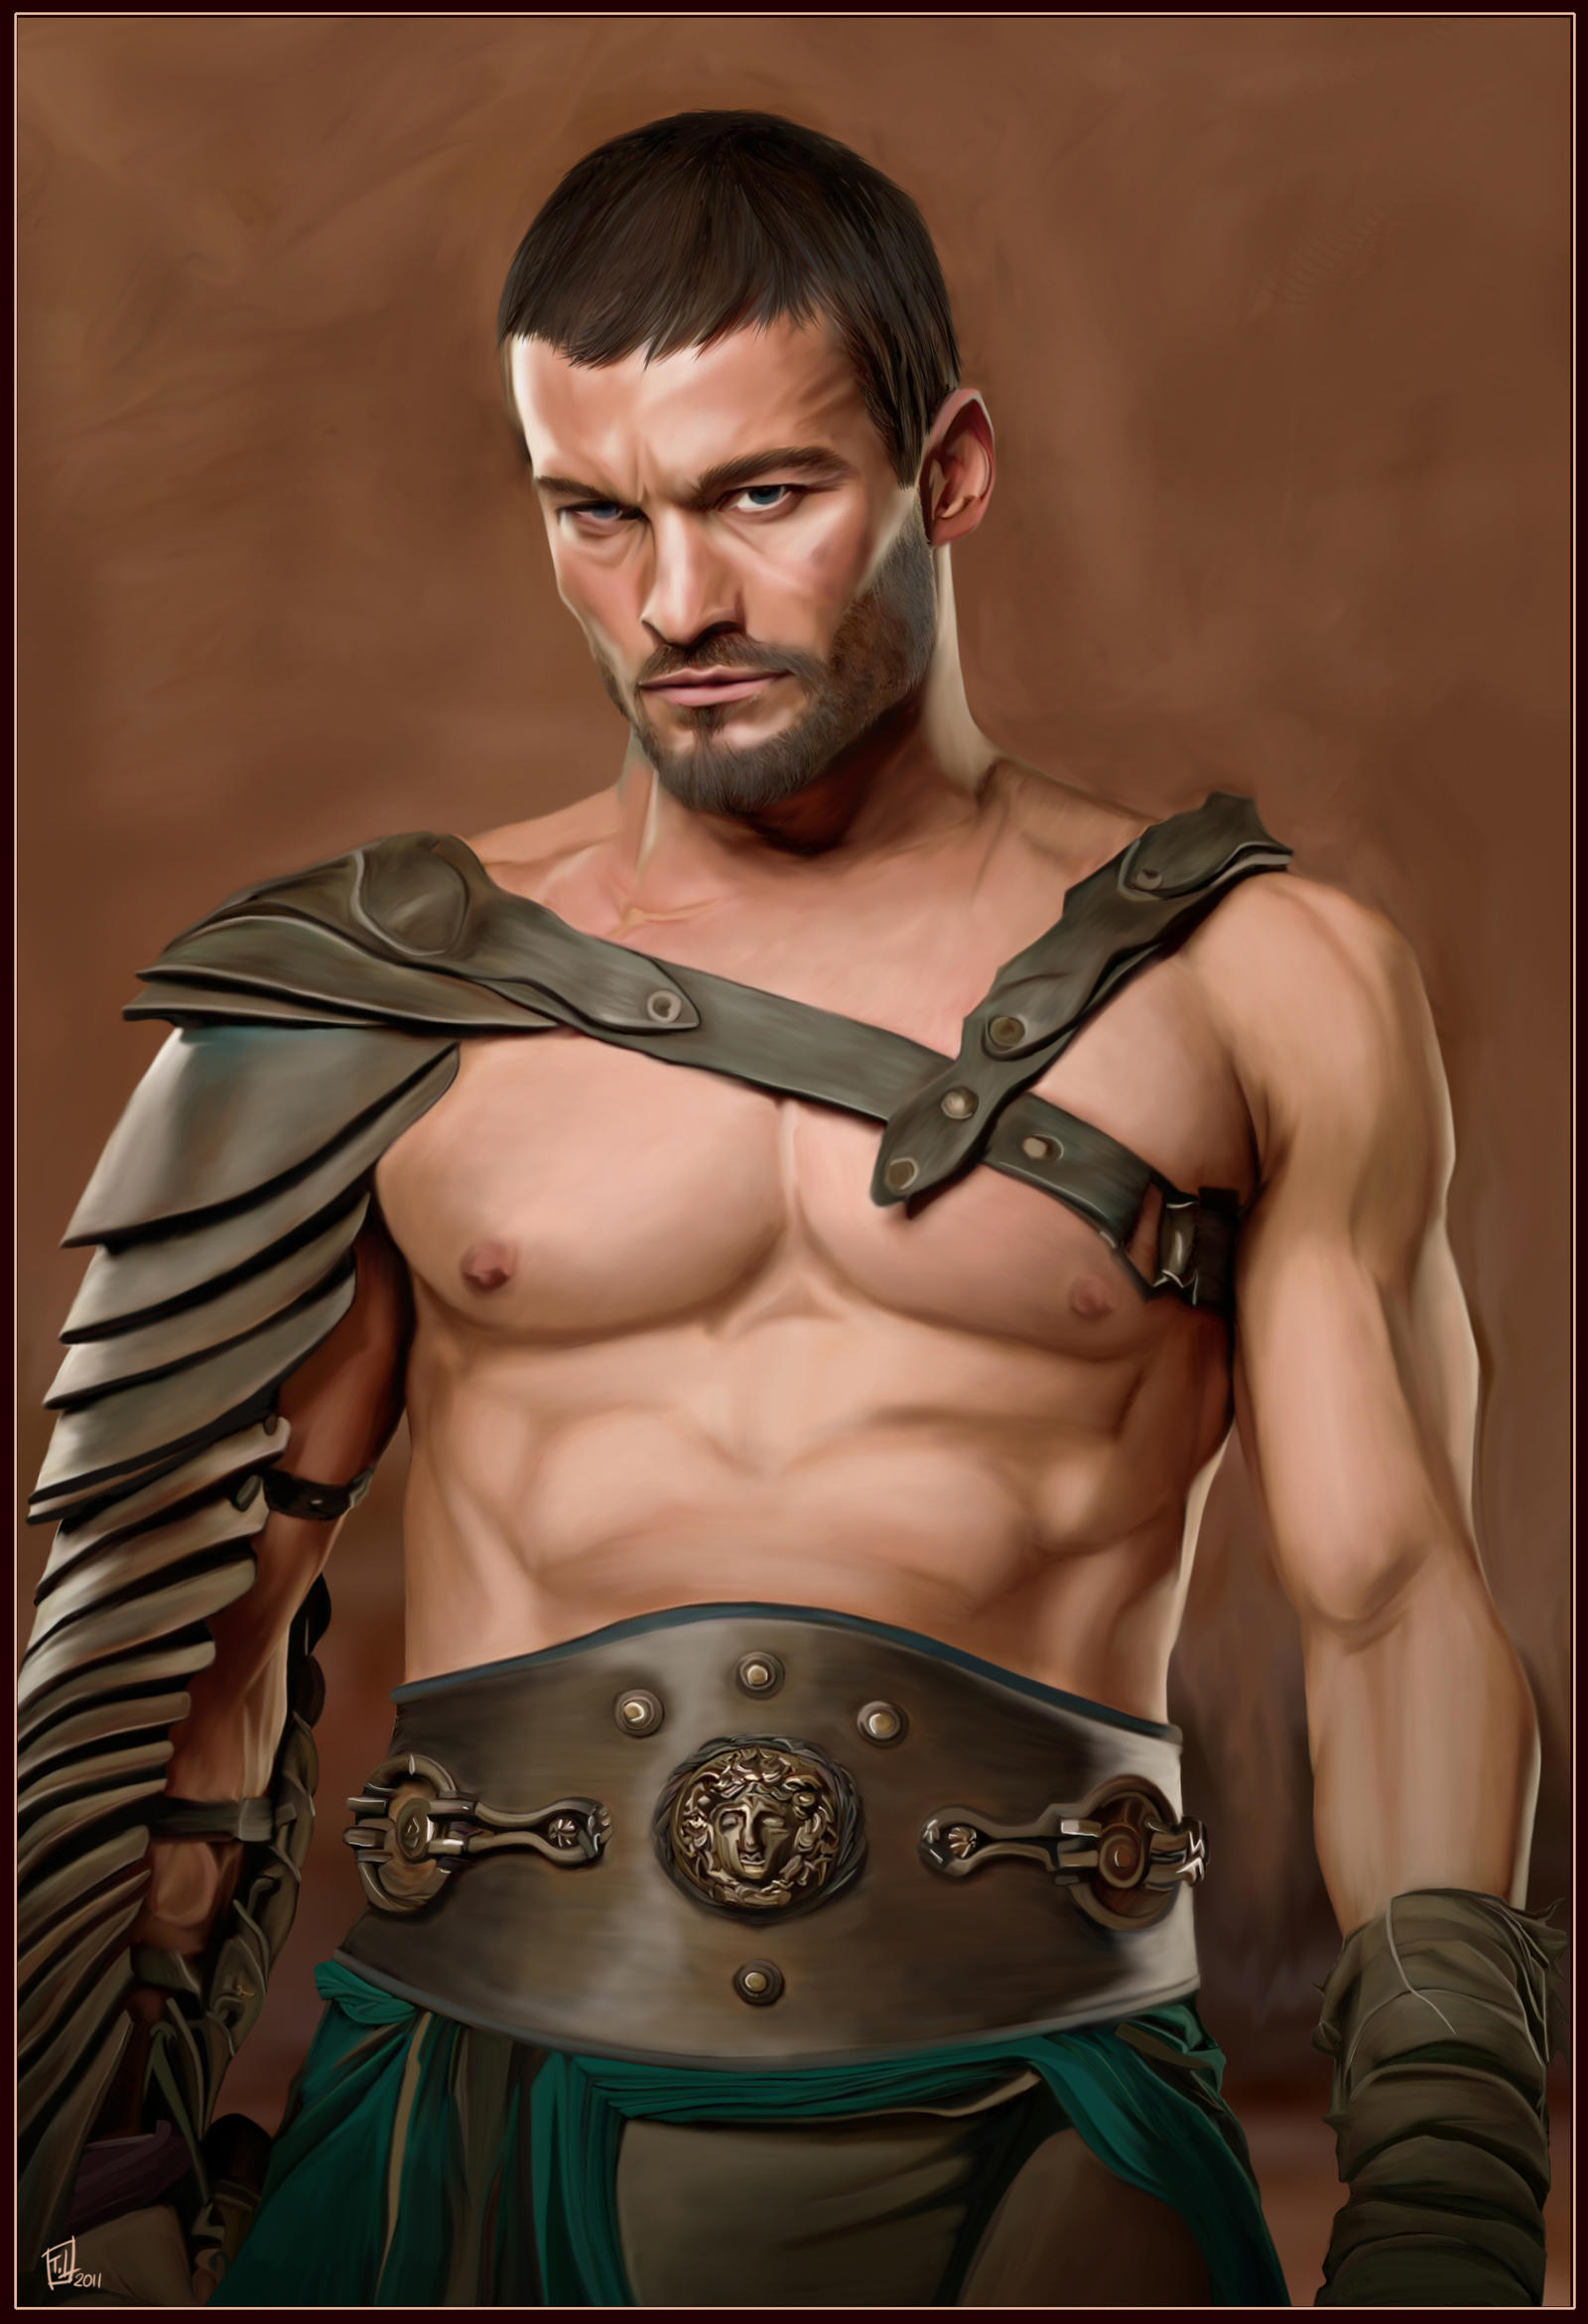 'SPARTACUS'  2010 by KOKORONIN